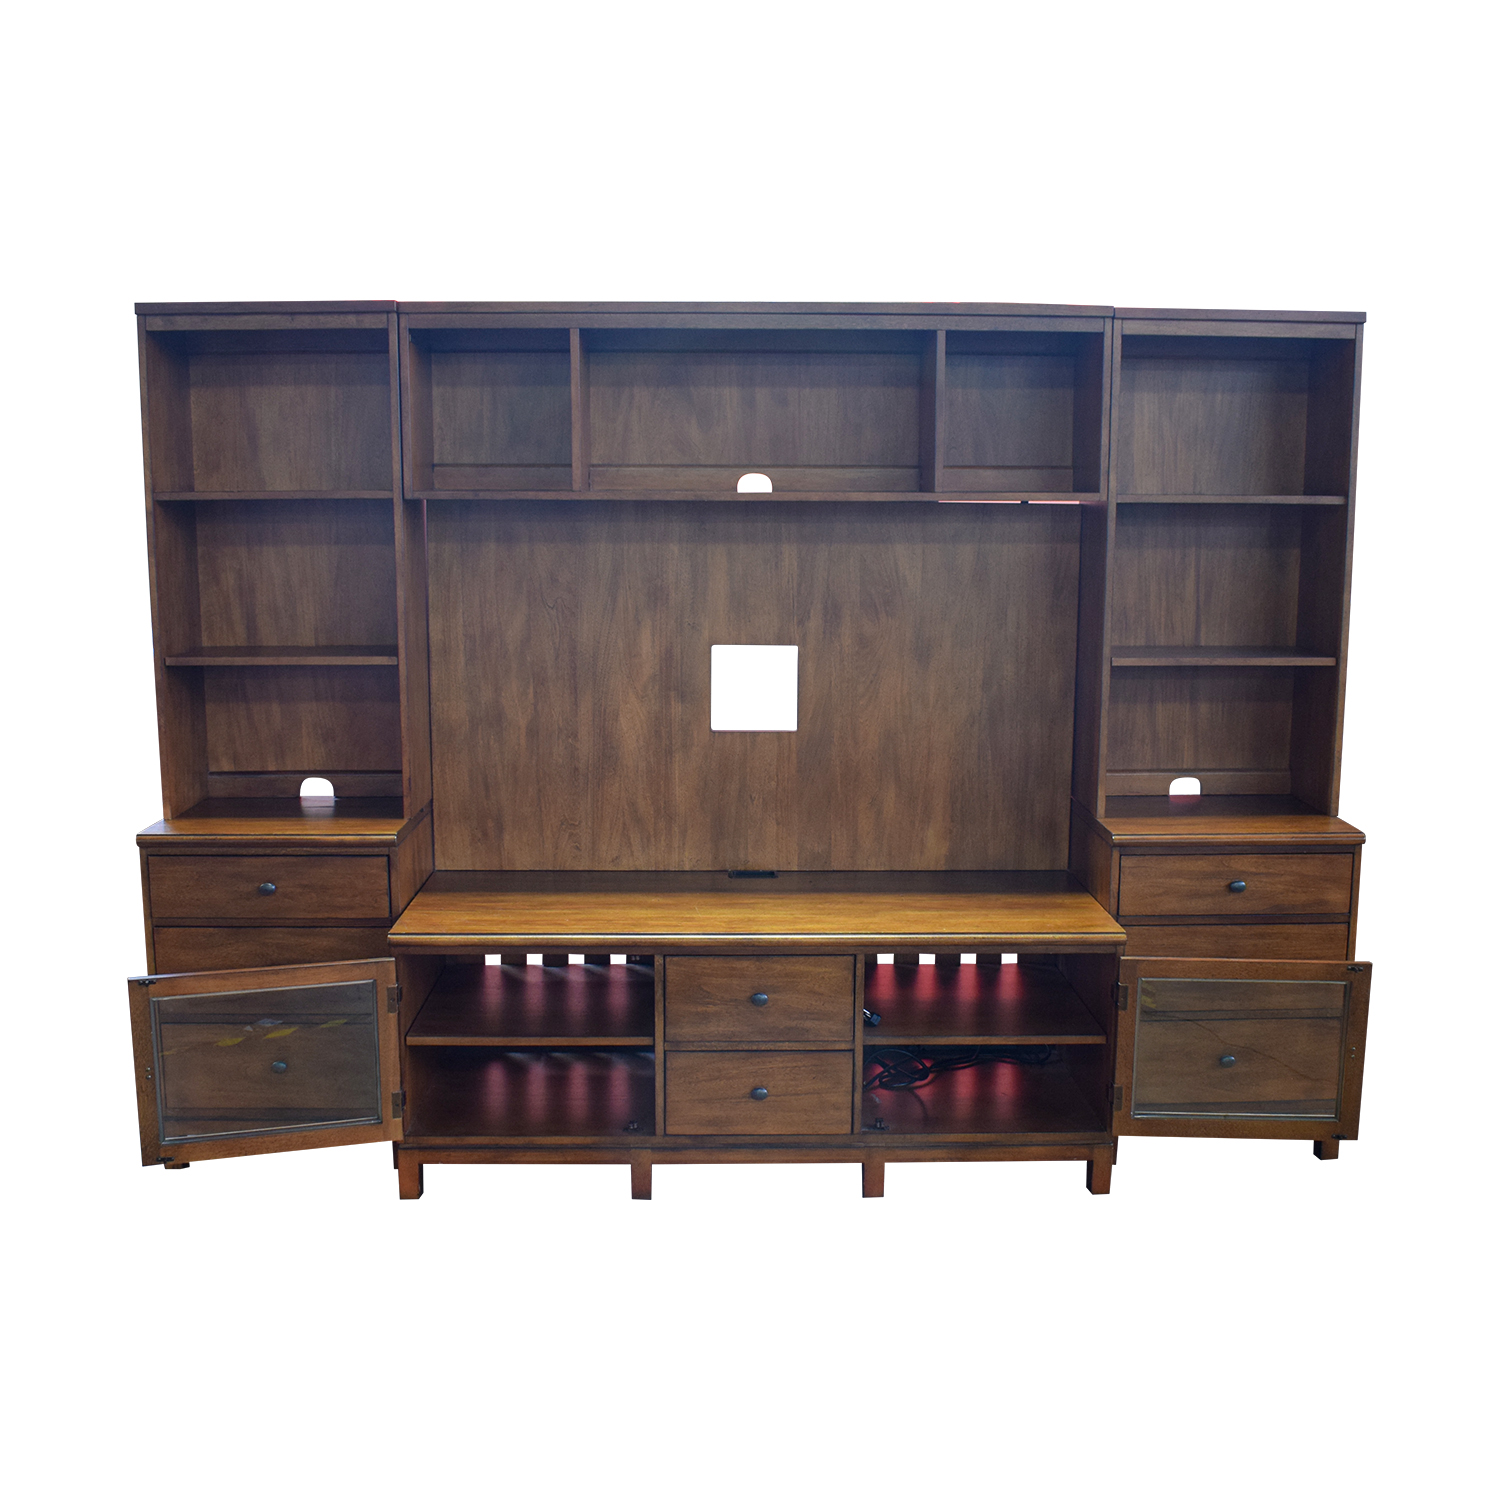 83% Off - Ethan Allen Ethan Allen Wood Media Center With Drawers And  Shelves / Storage